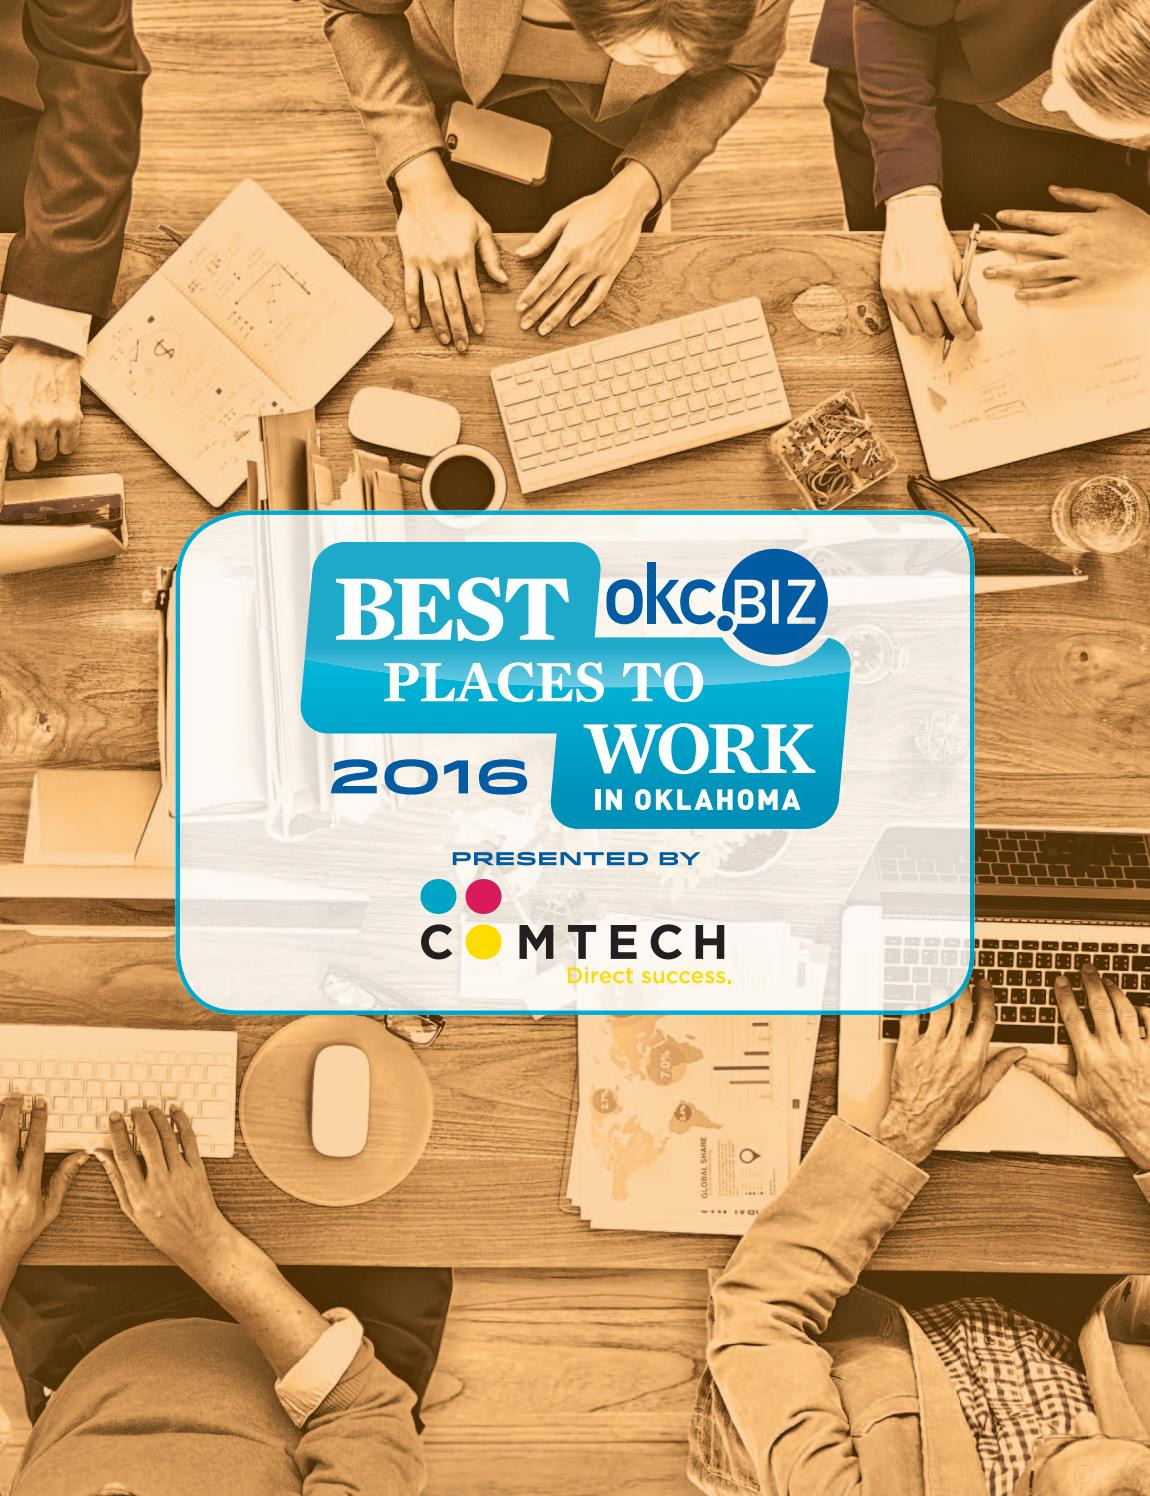 Okcz best places to work 2016 official program by okgazette issuu malvernweather Images